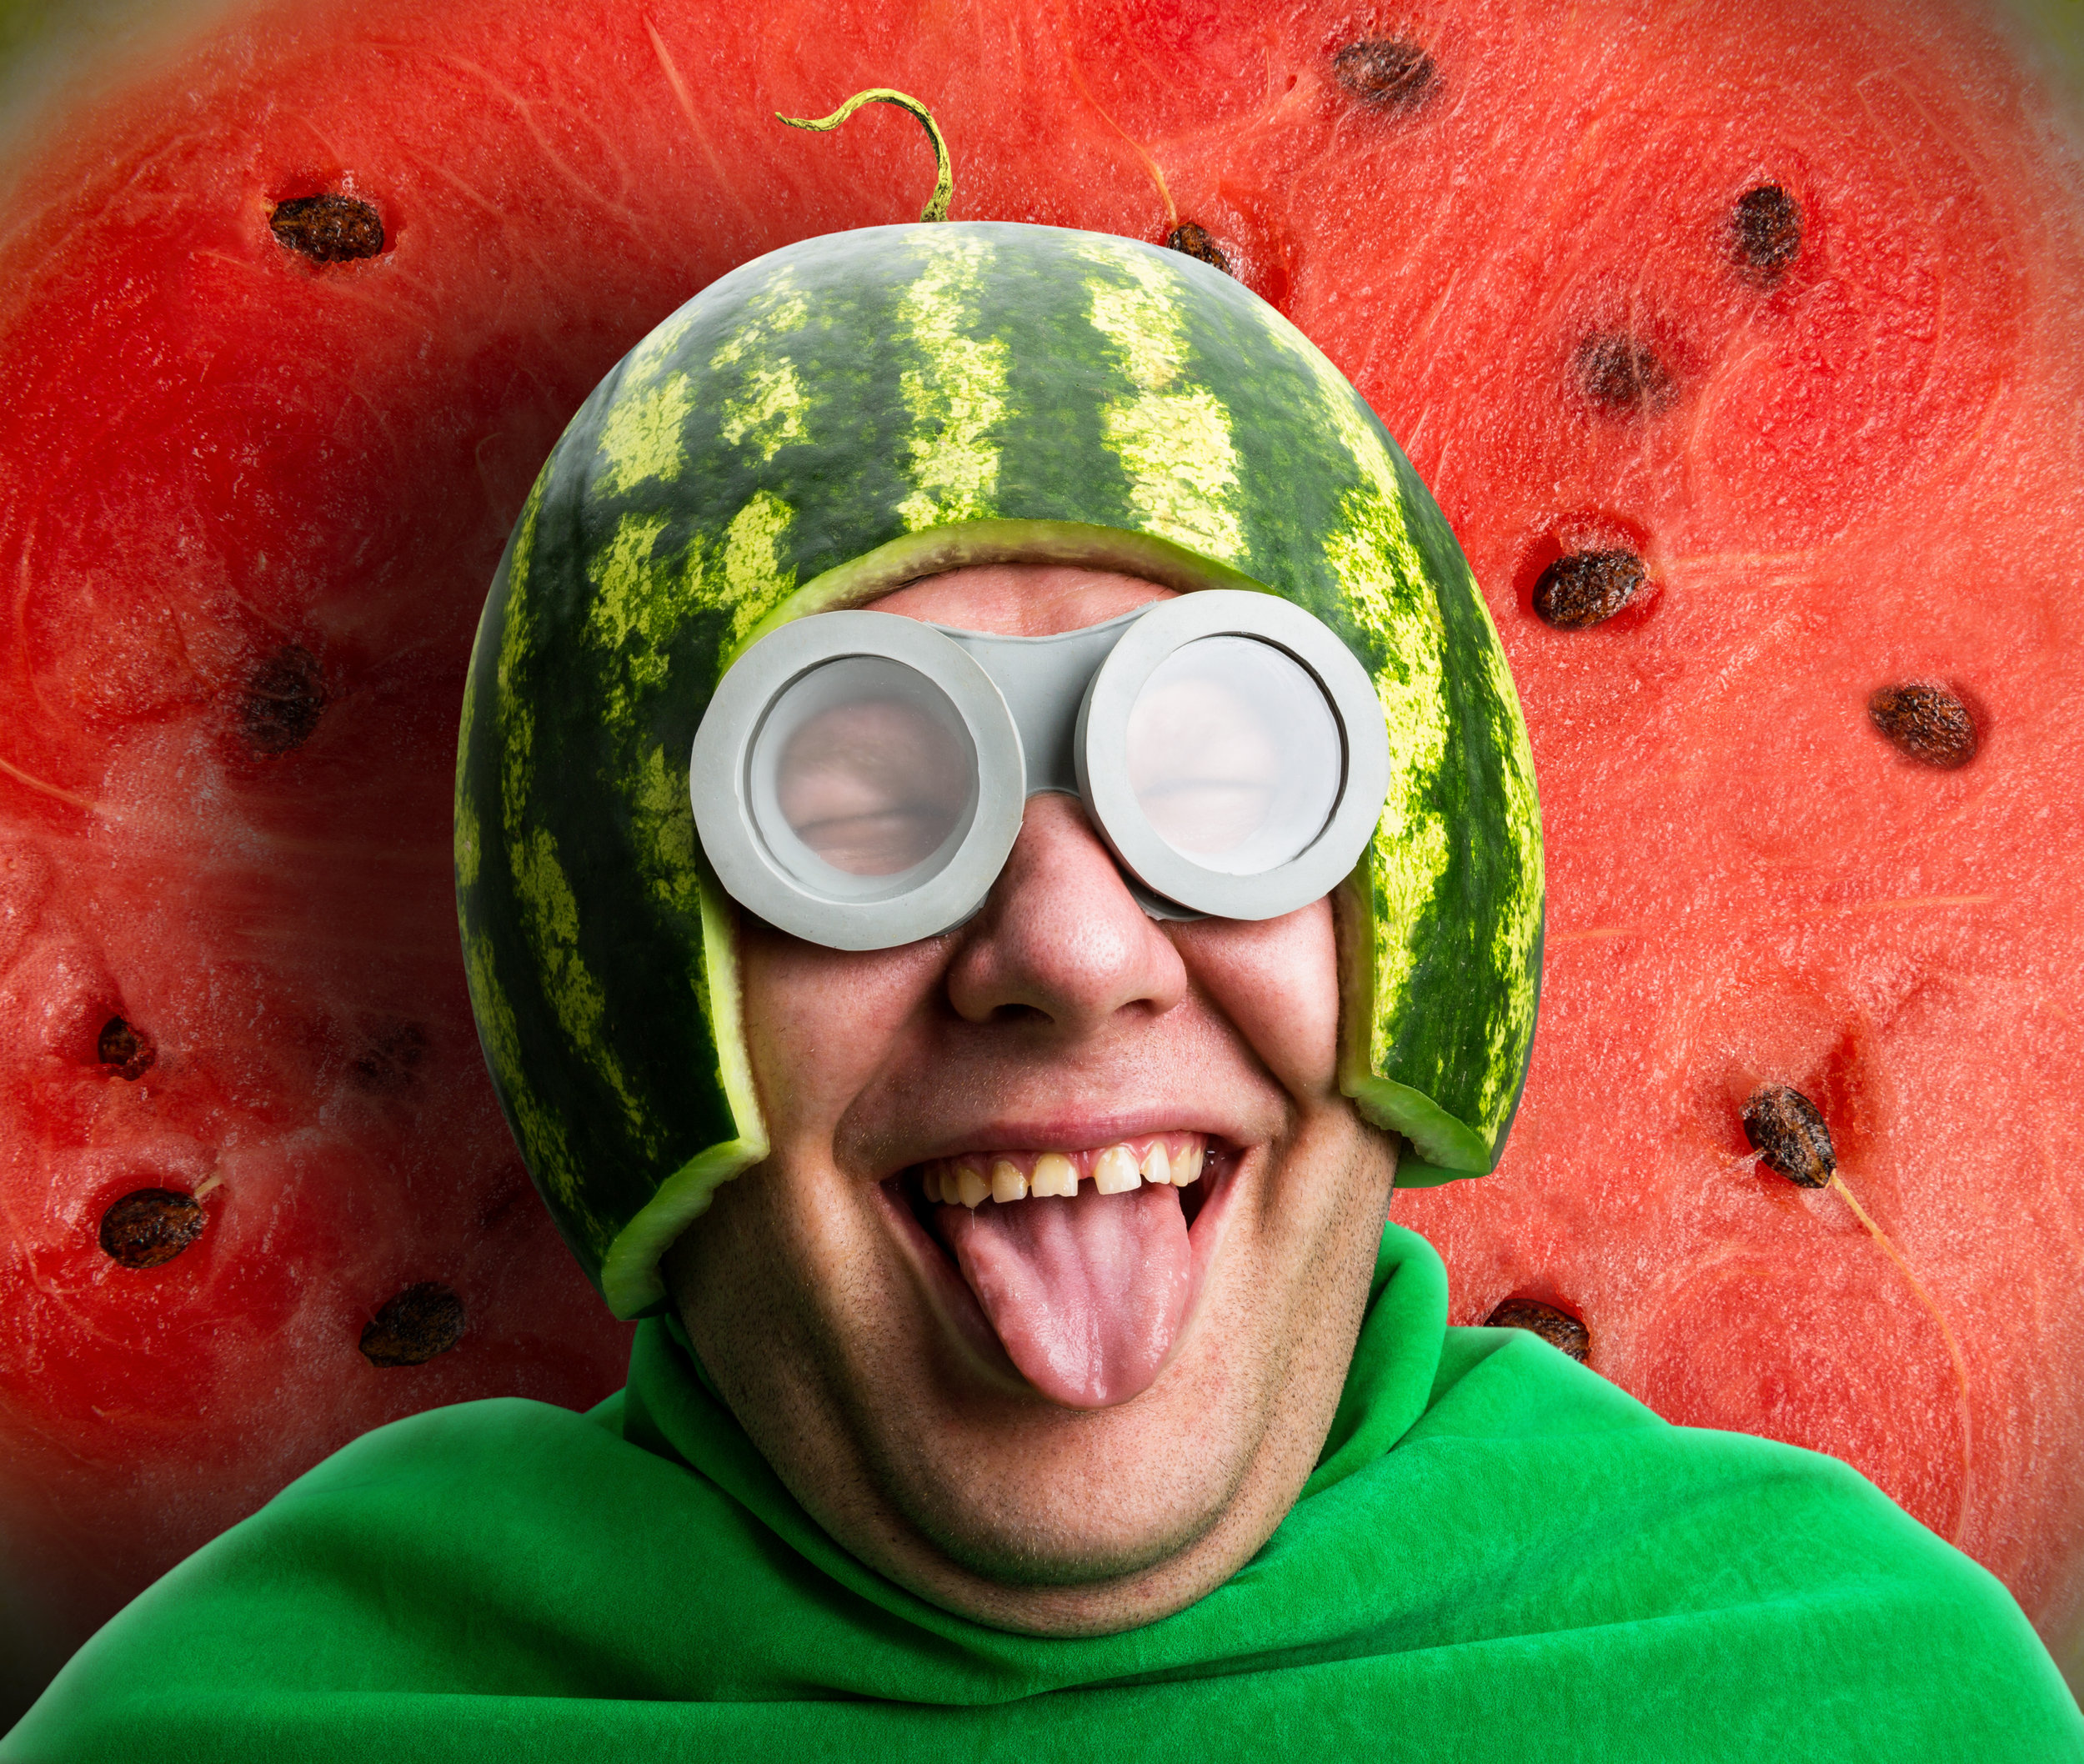 If you want to wear a watermelon hat, you just do it!